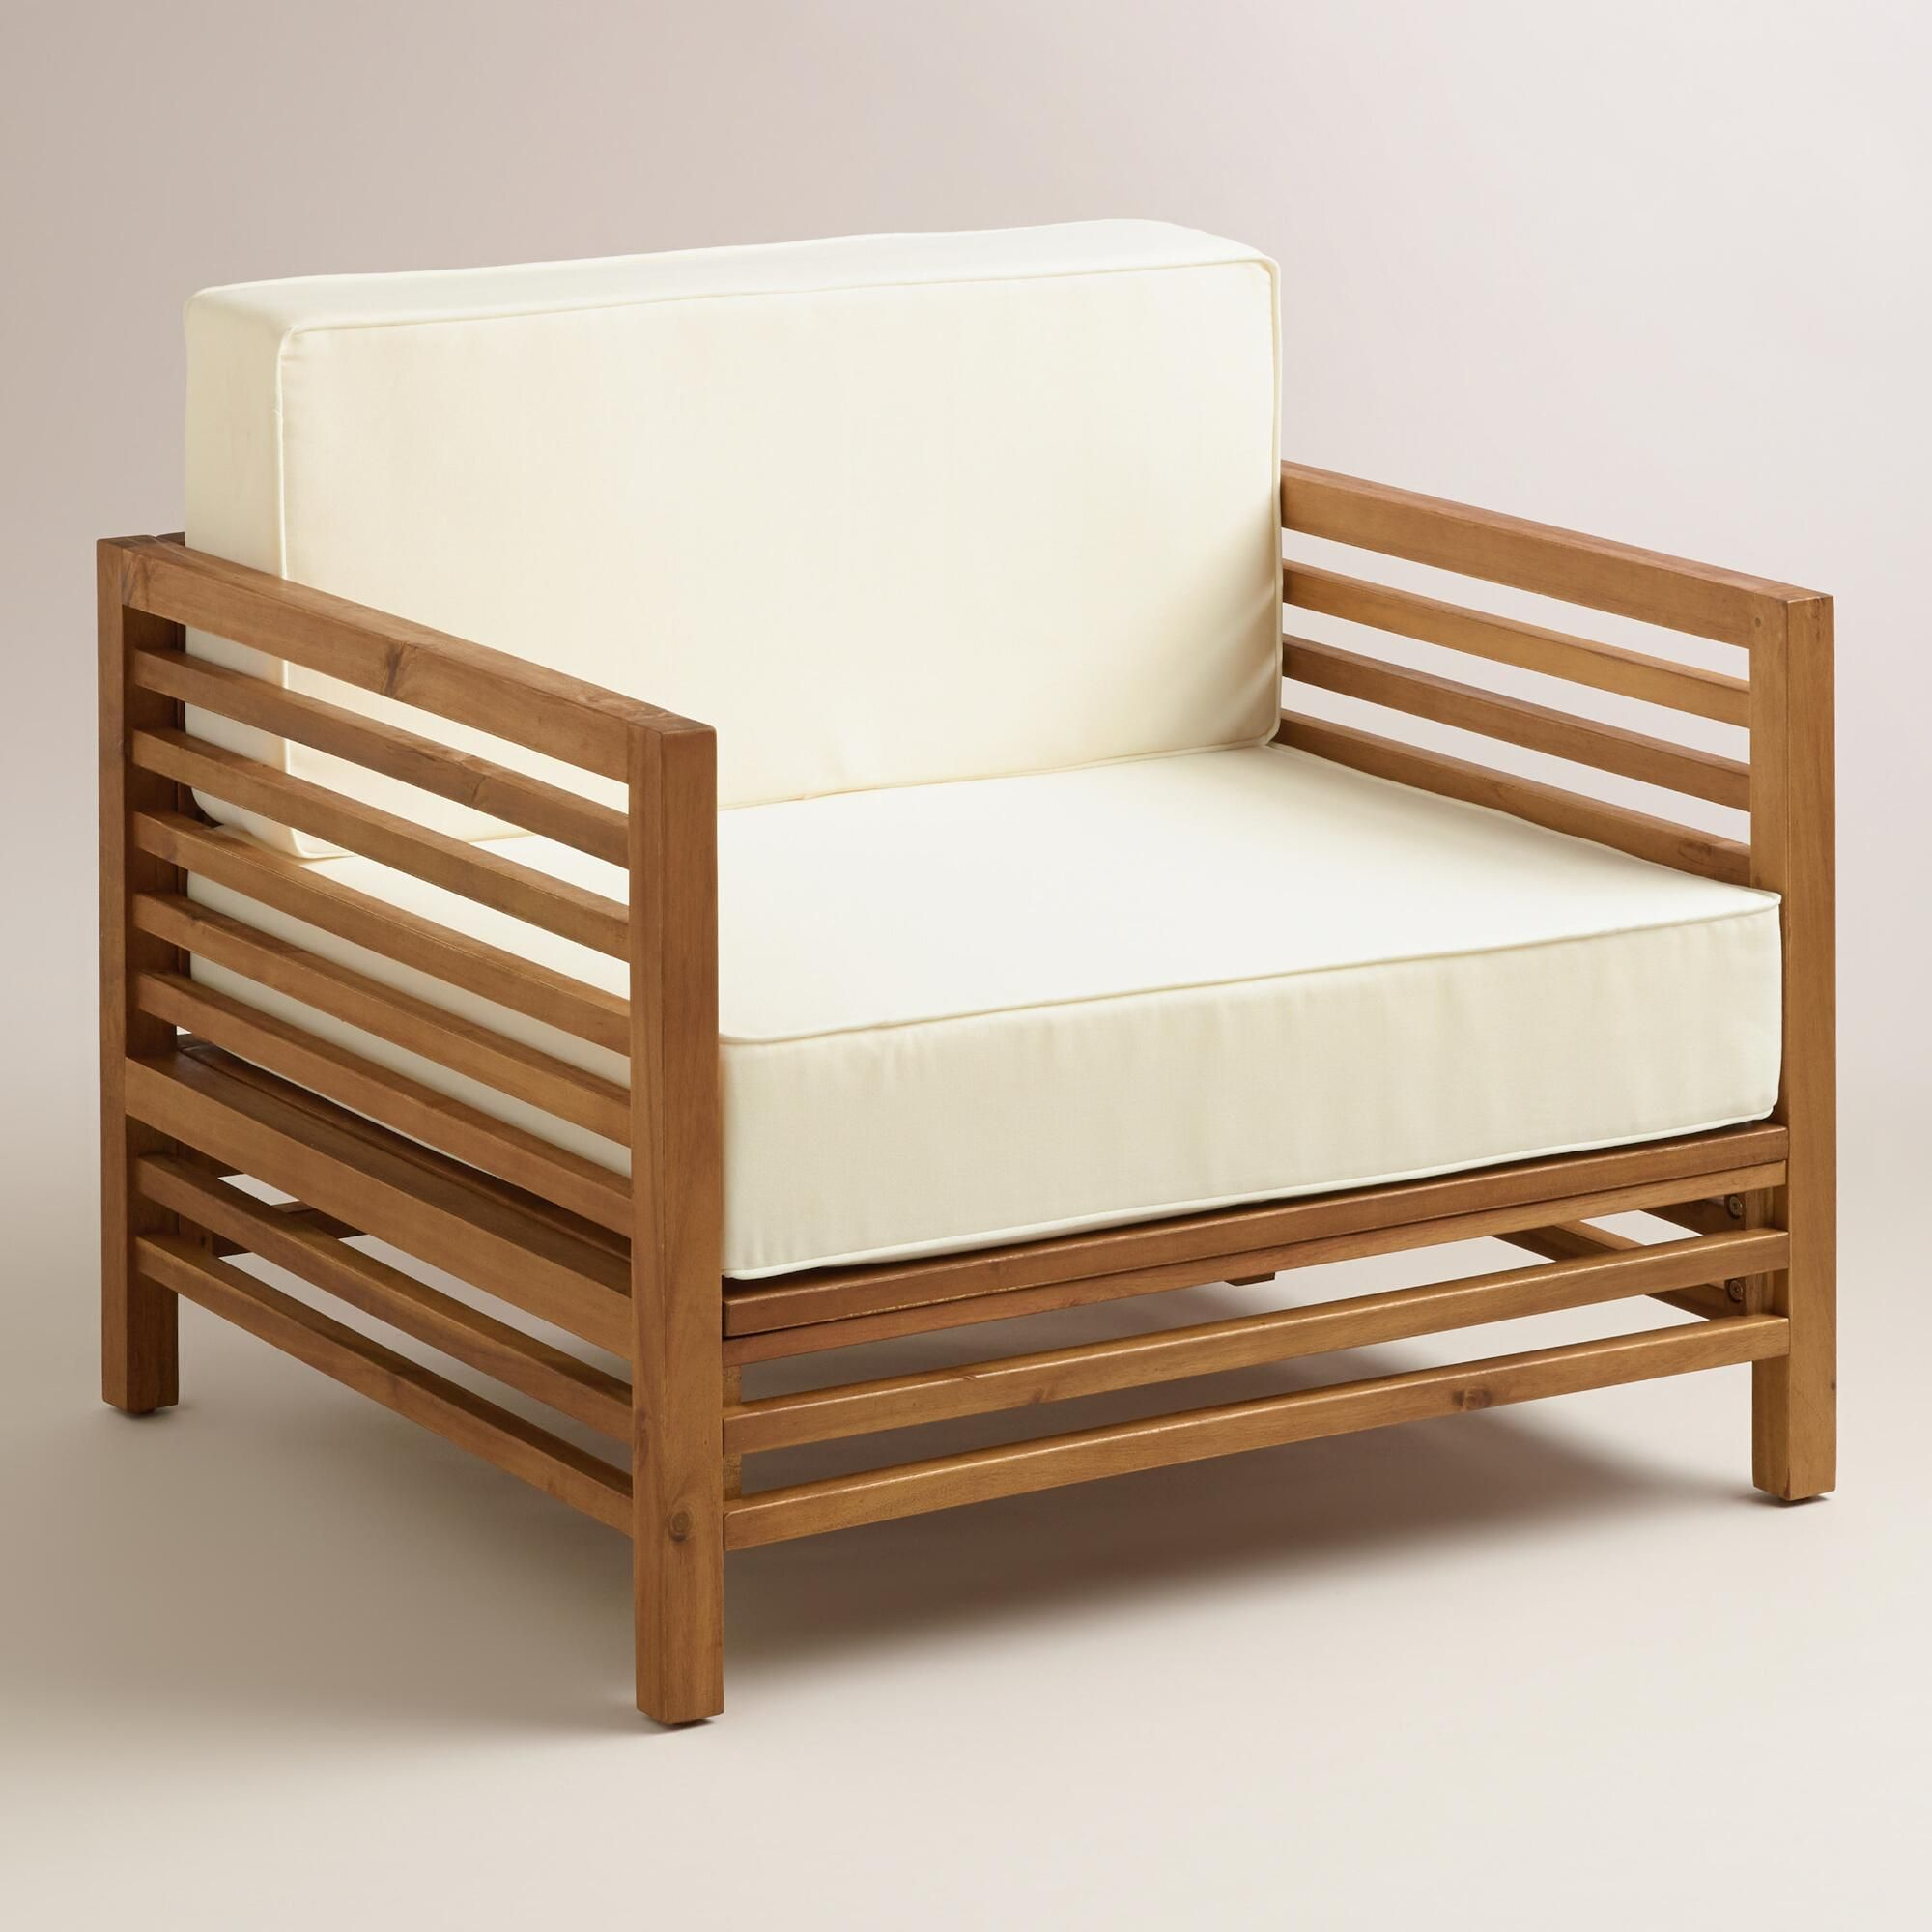 The Bold Beauty Of Our Contemporary Occasional Chair Comes From Solid Acacia  Wood Construction Highlighted With